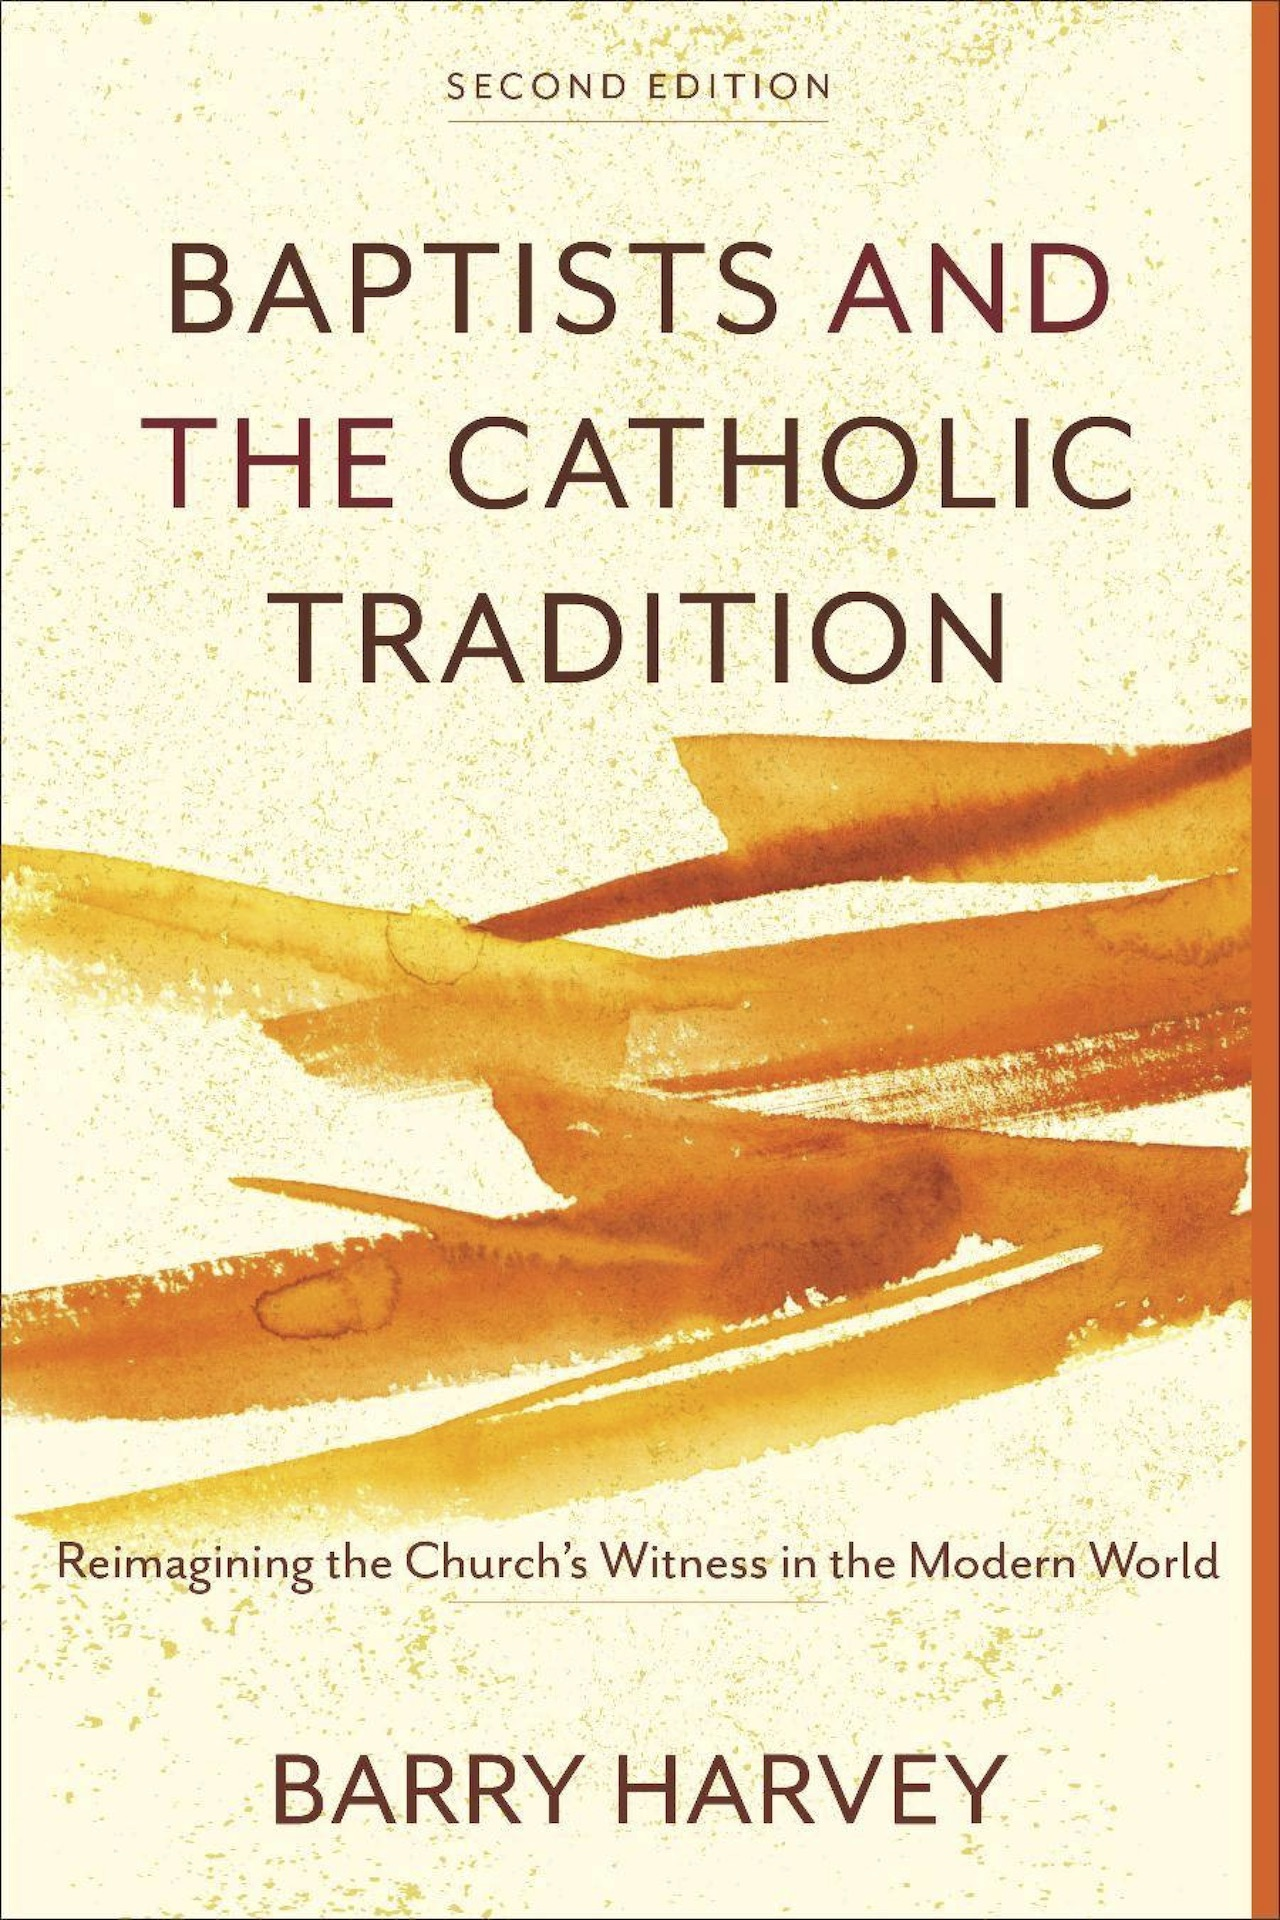 New Book: Baptists and the Catholic Tradition, 2nd Edition